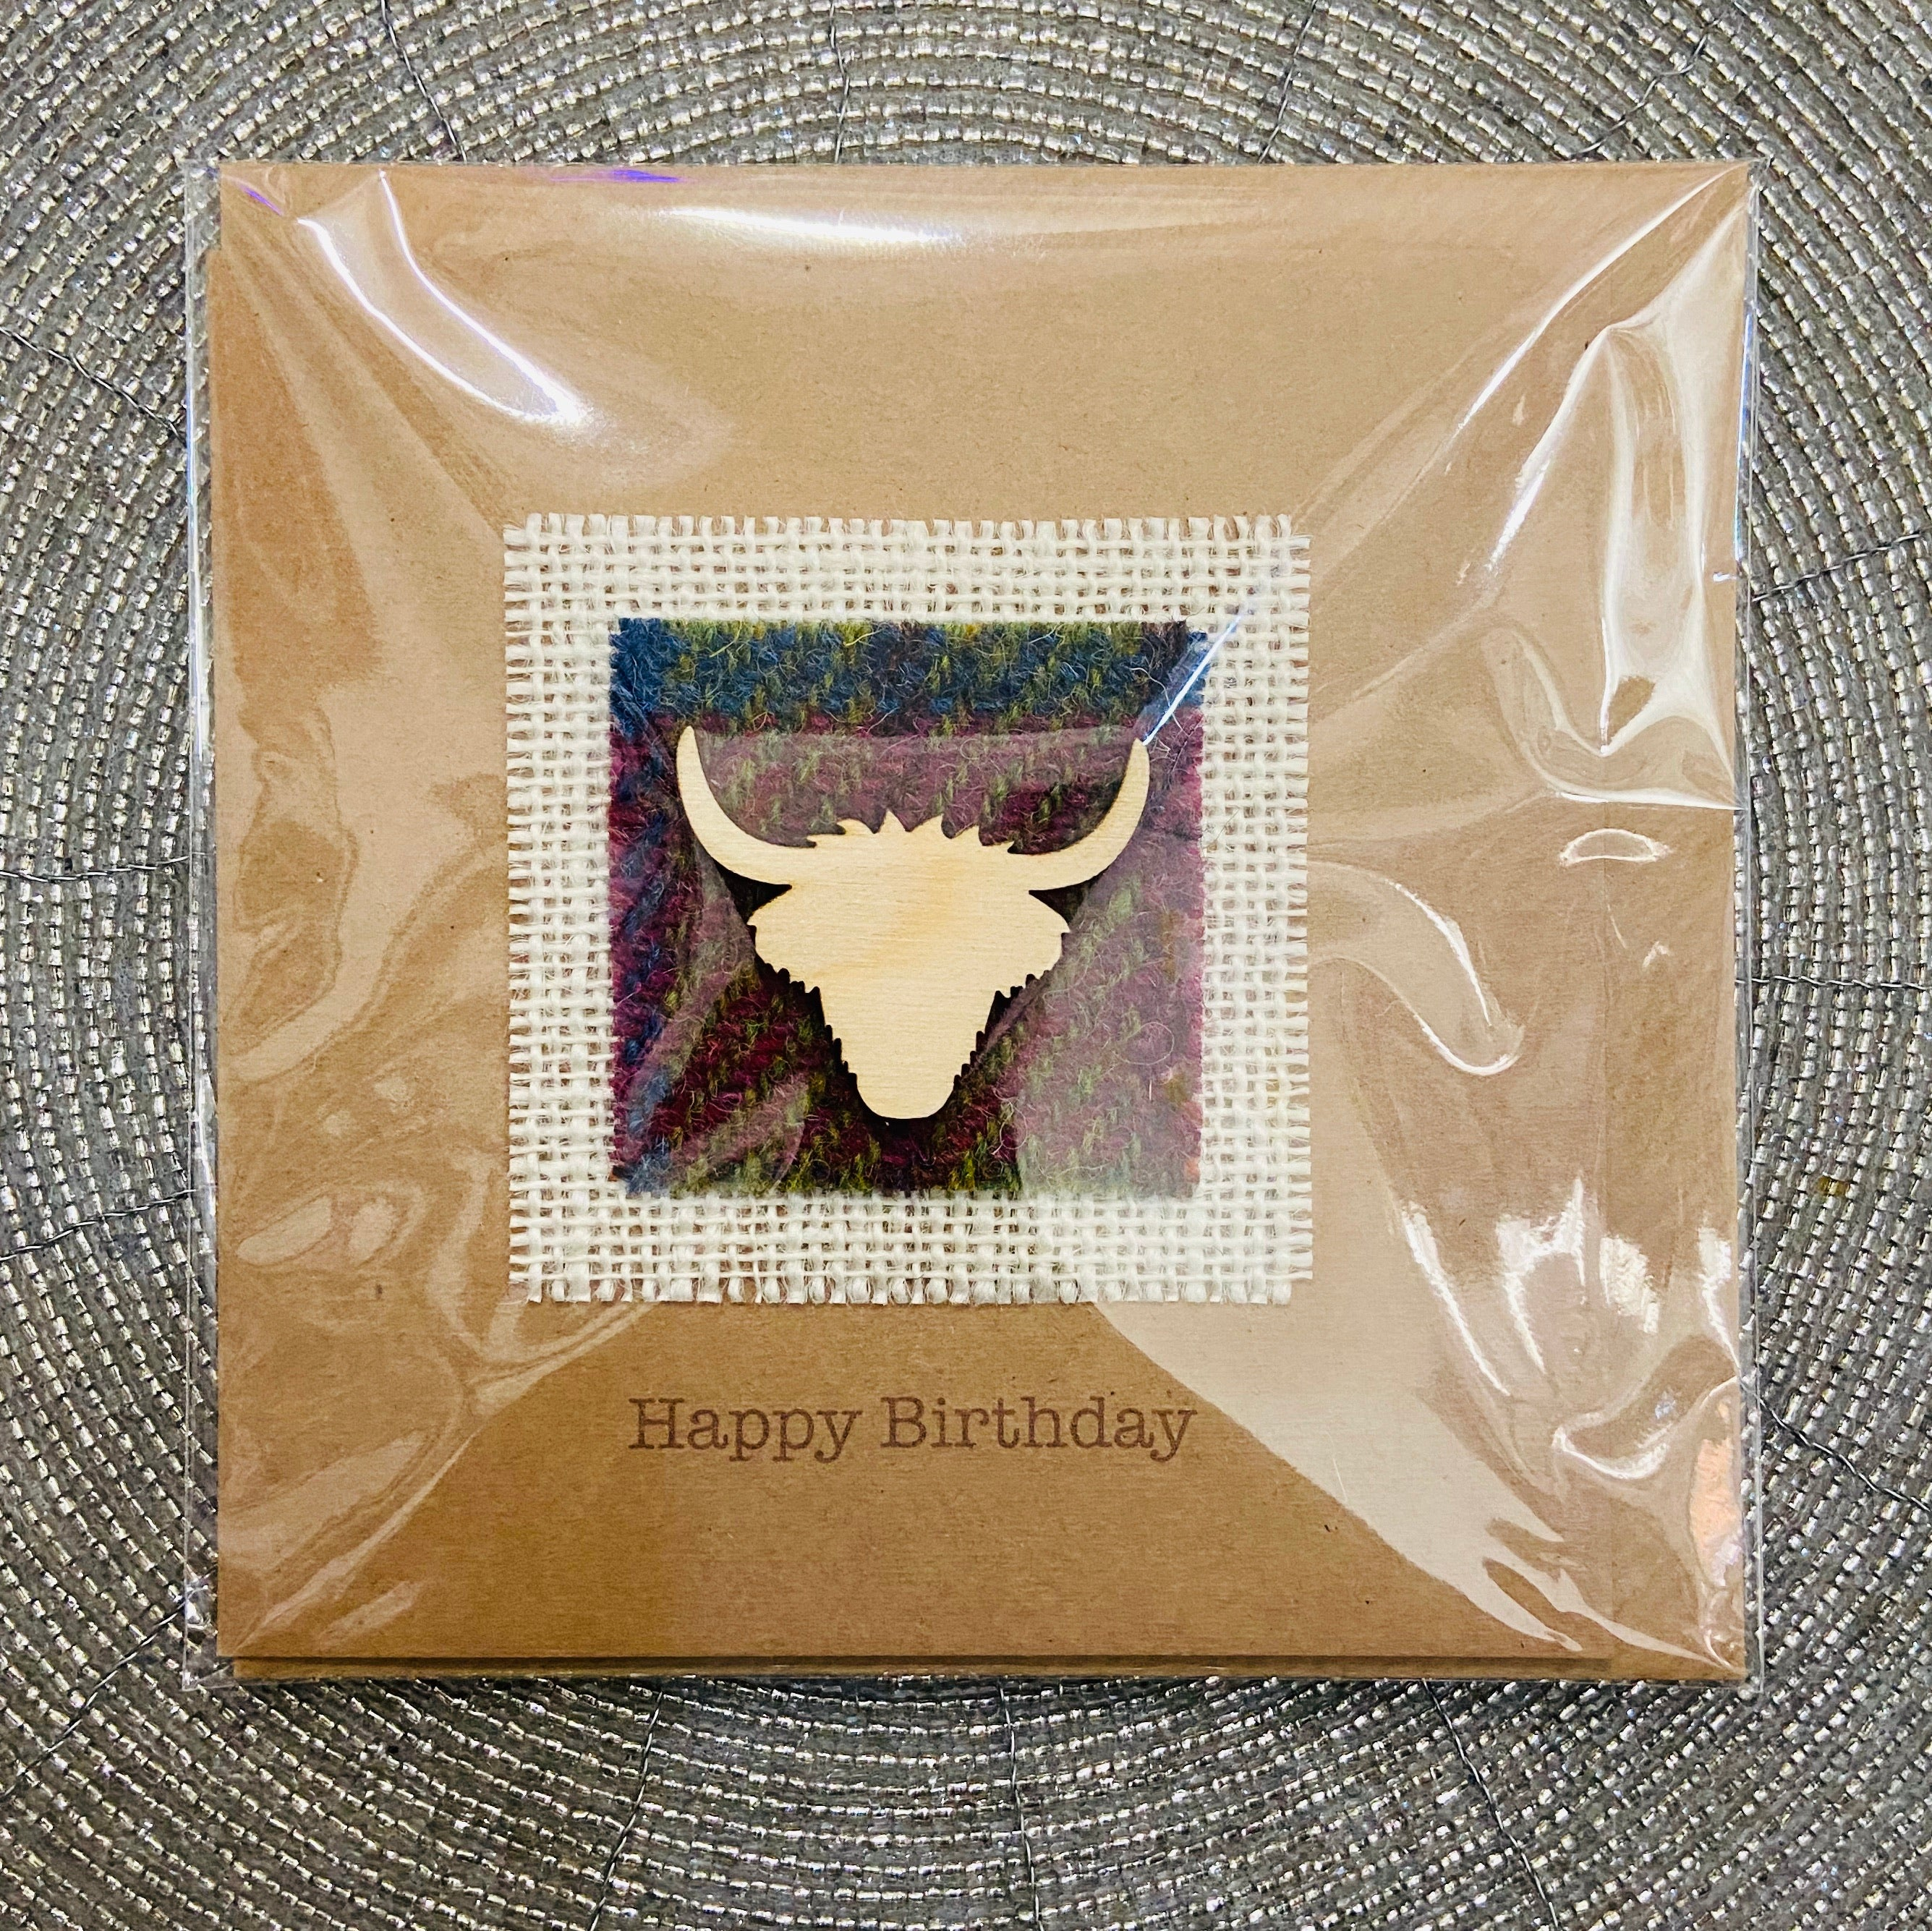 Tartan Highland Cow Card